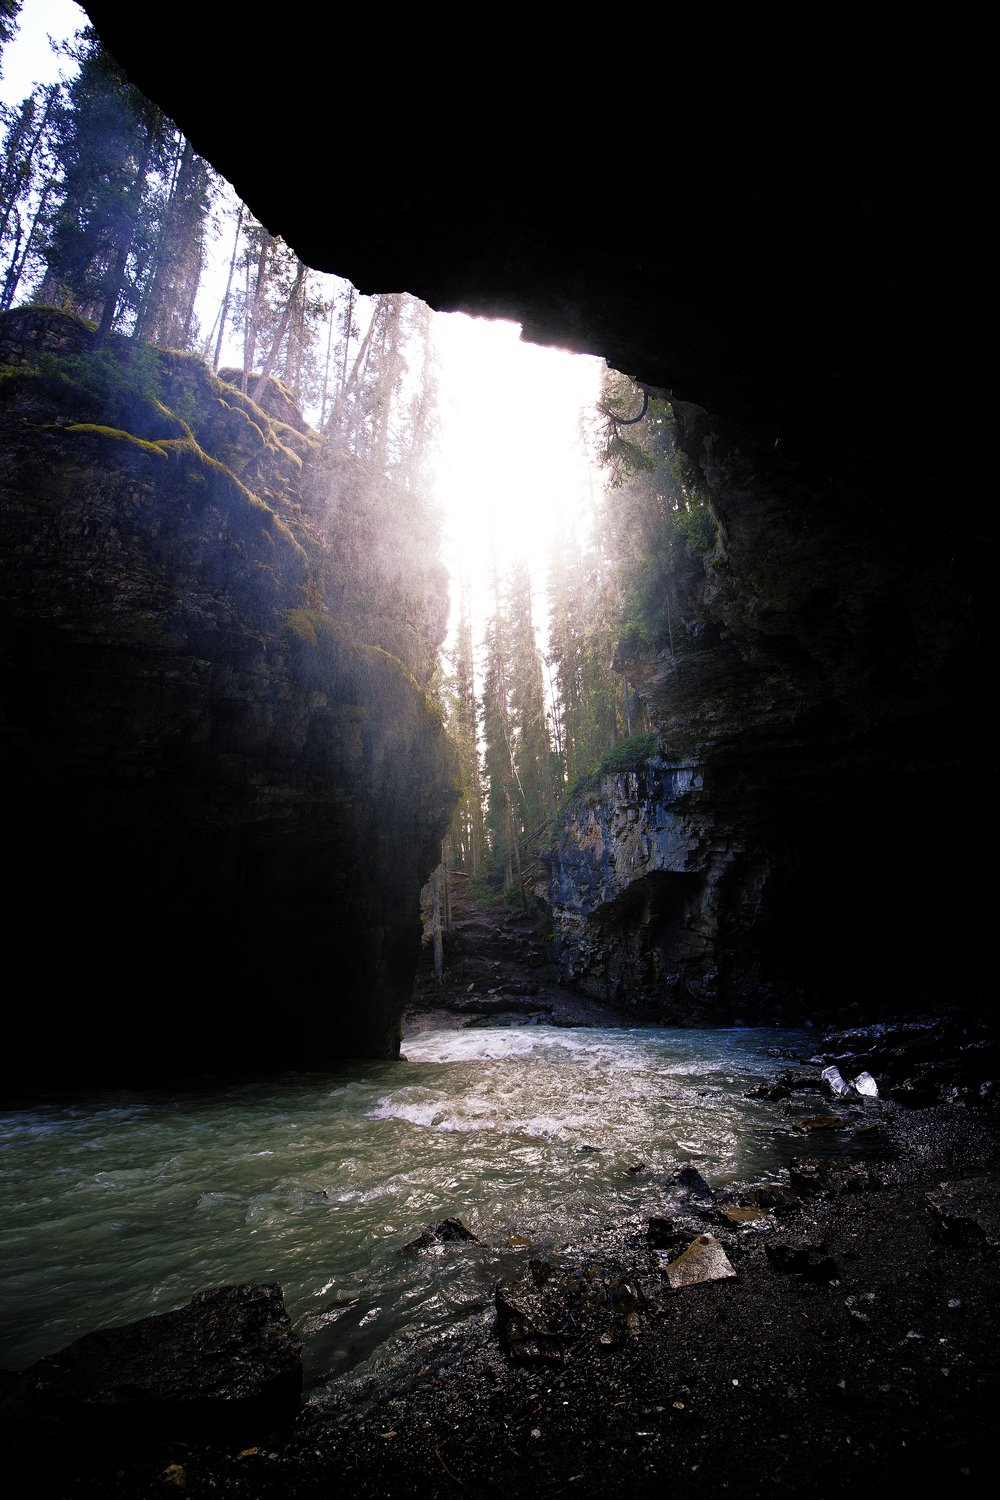 View of Path from the Inside of Cave